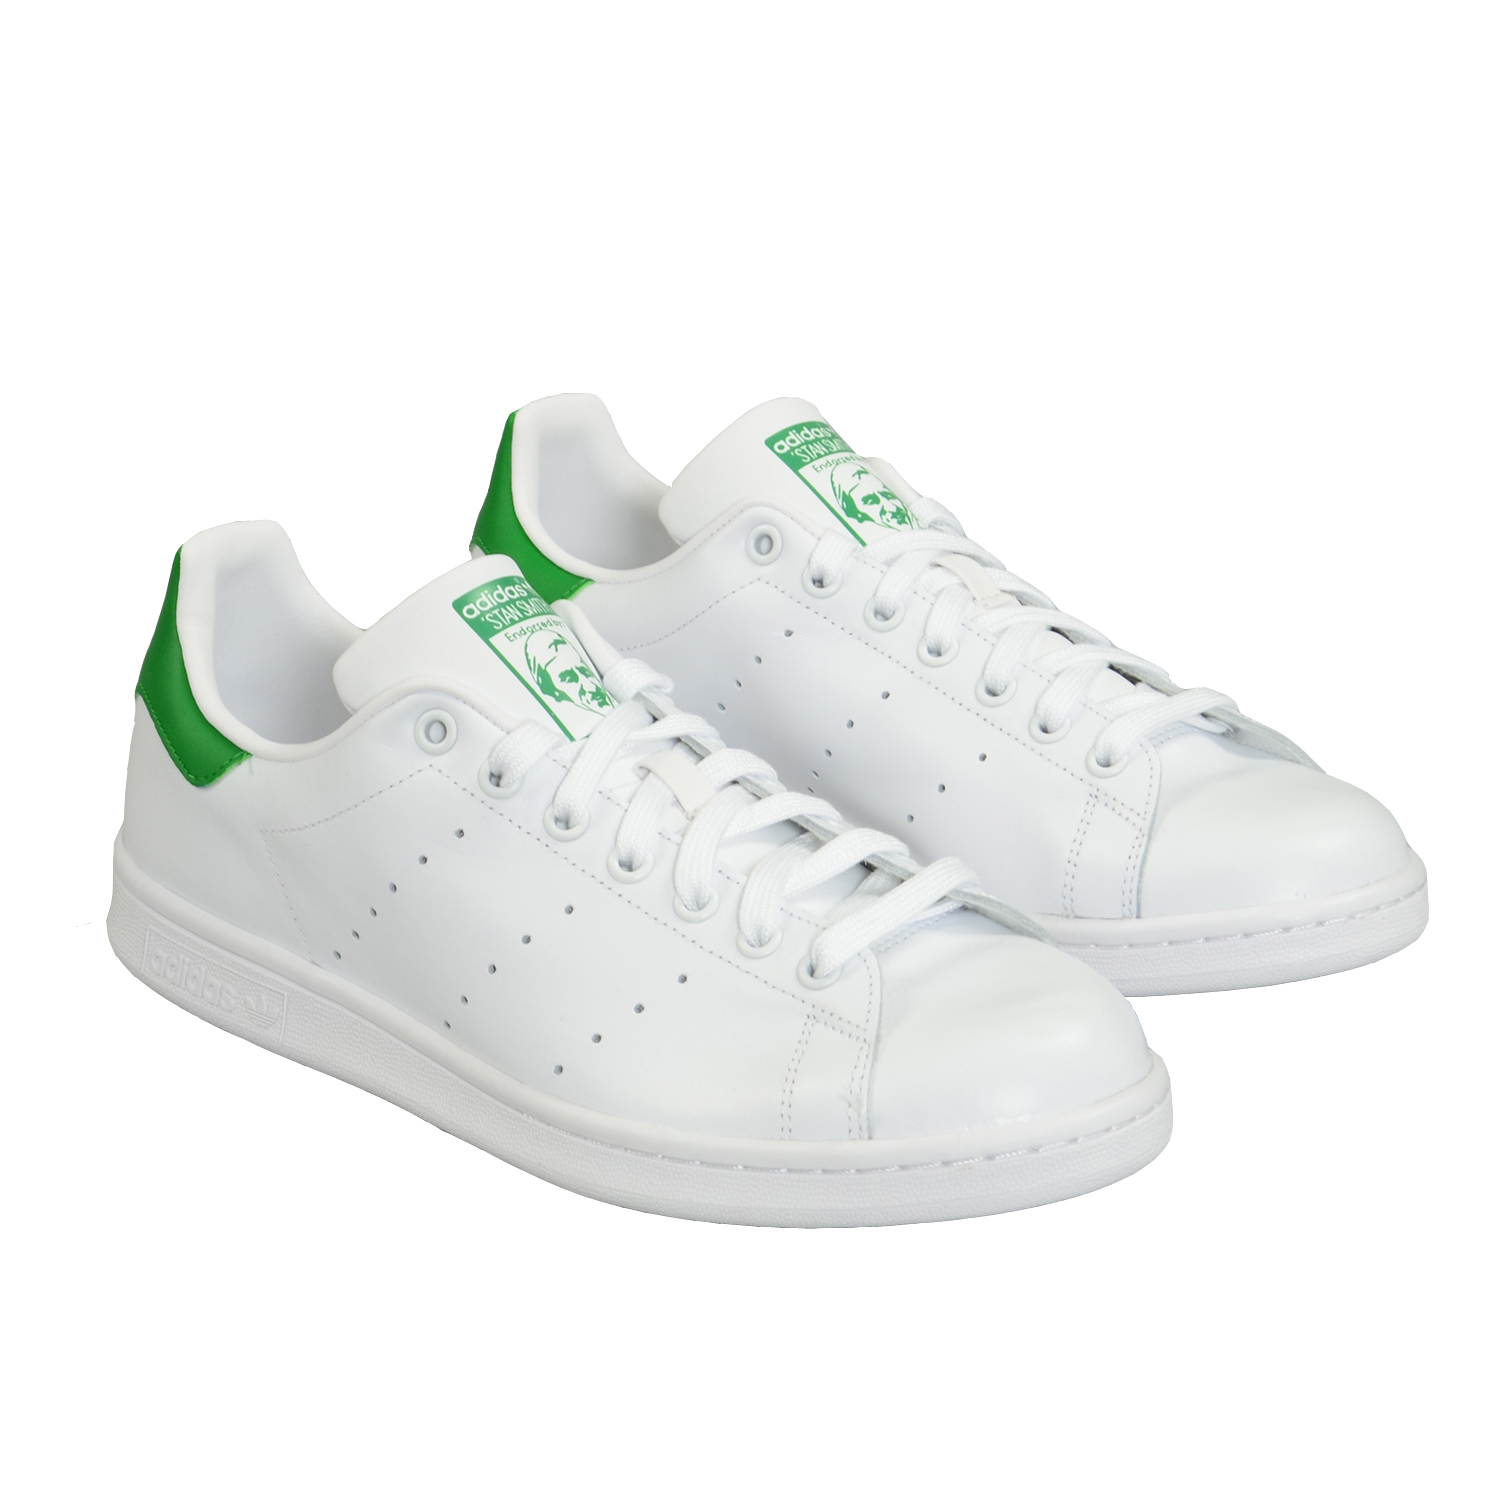 adidas stan smith low sneaker weiss gruen 150914 0 surf. Black Bedroom Furniture Sets. Home Design Ideas